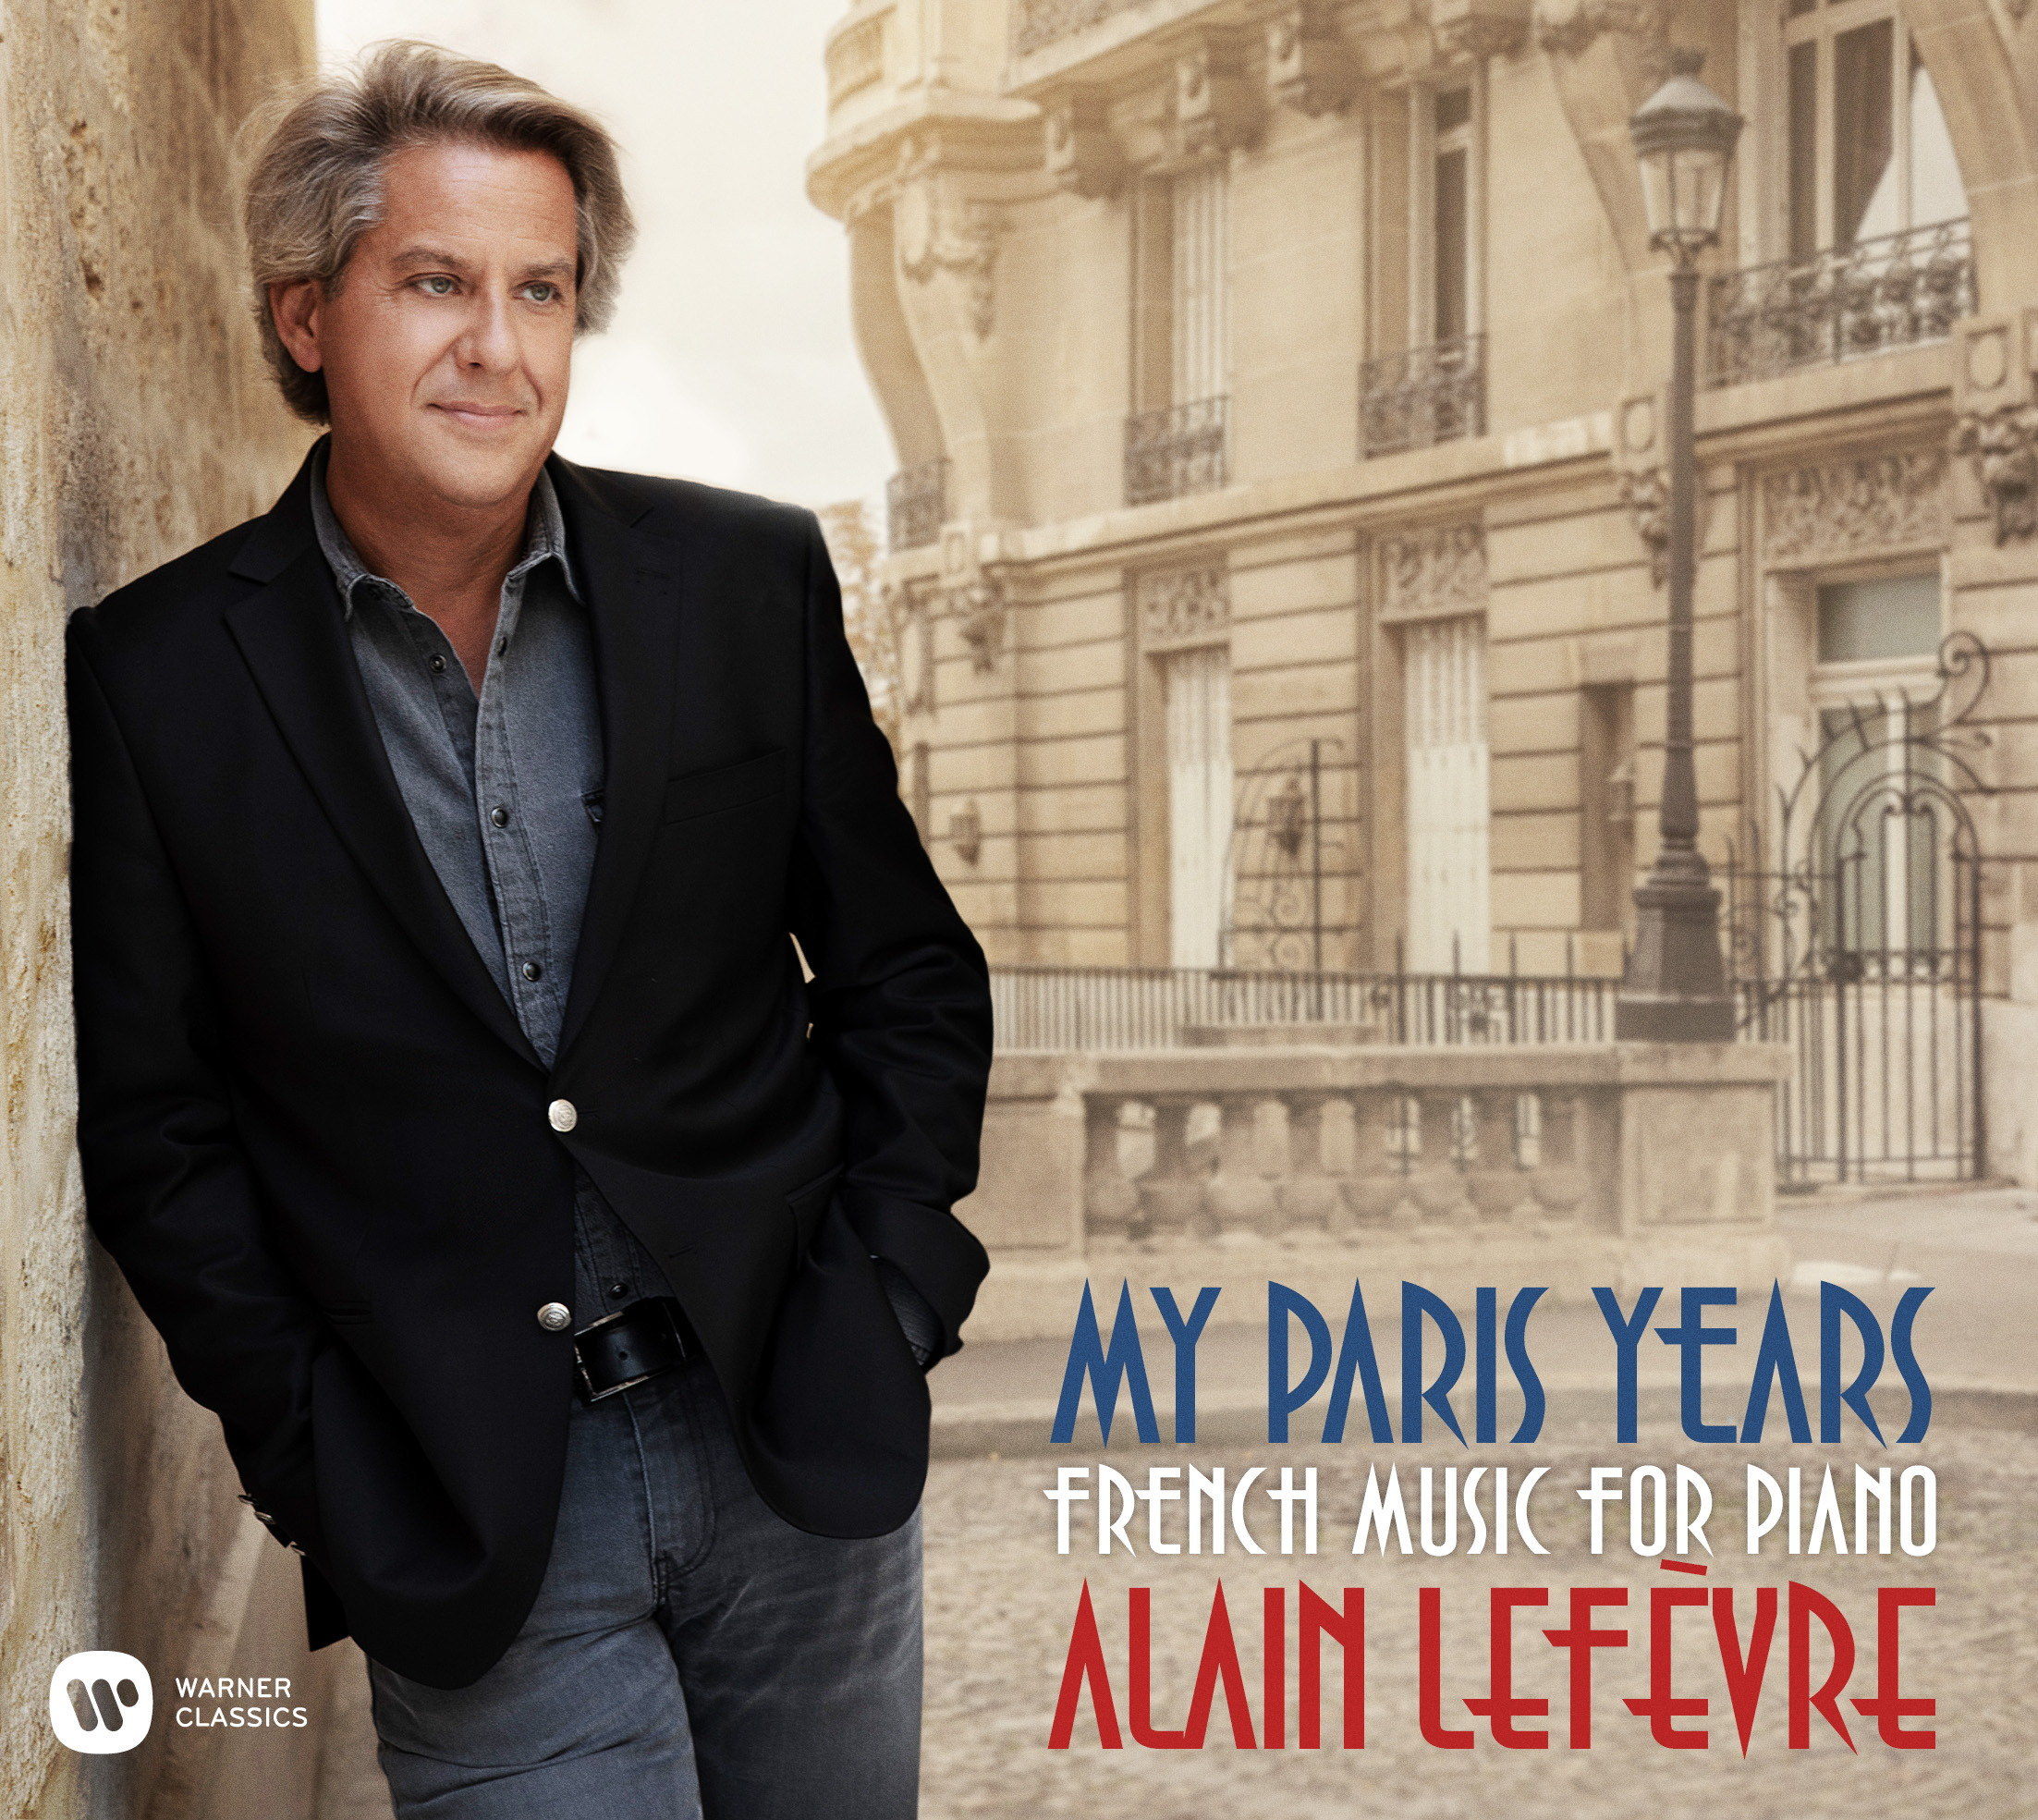 Alain Lefèvre: My Paris Years